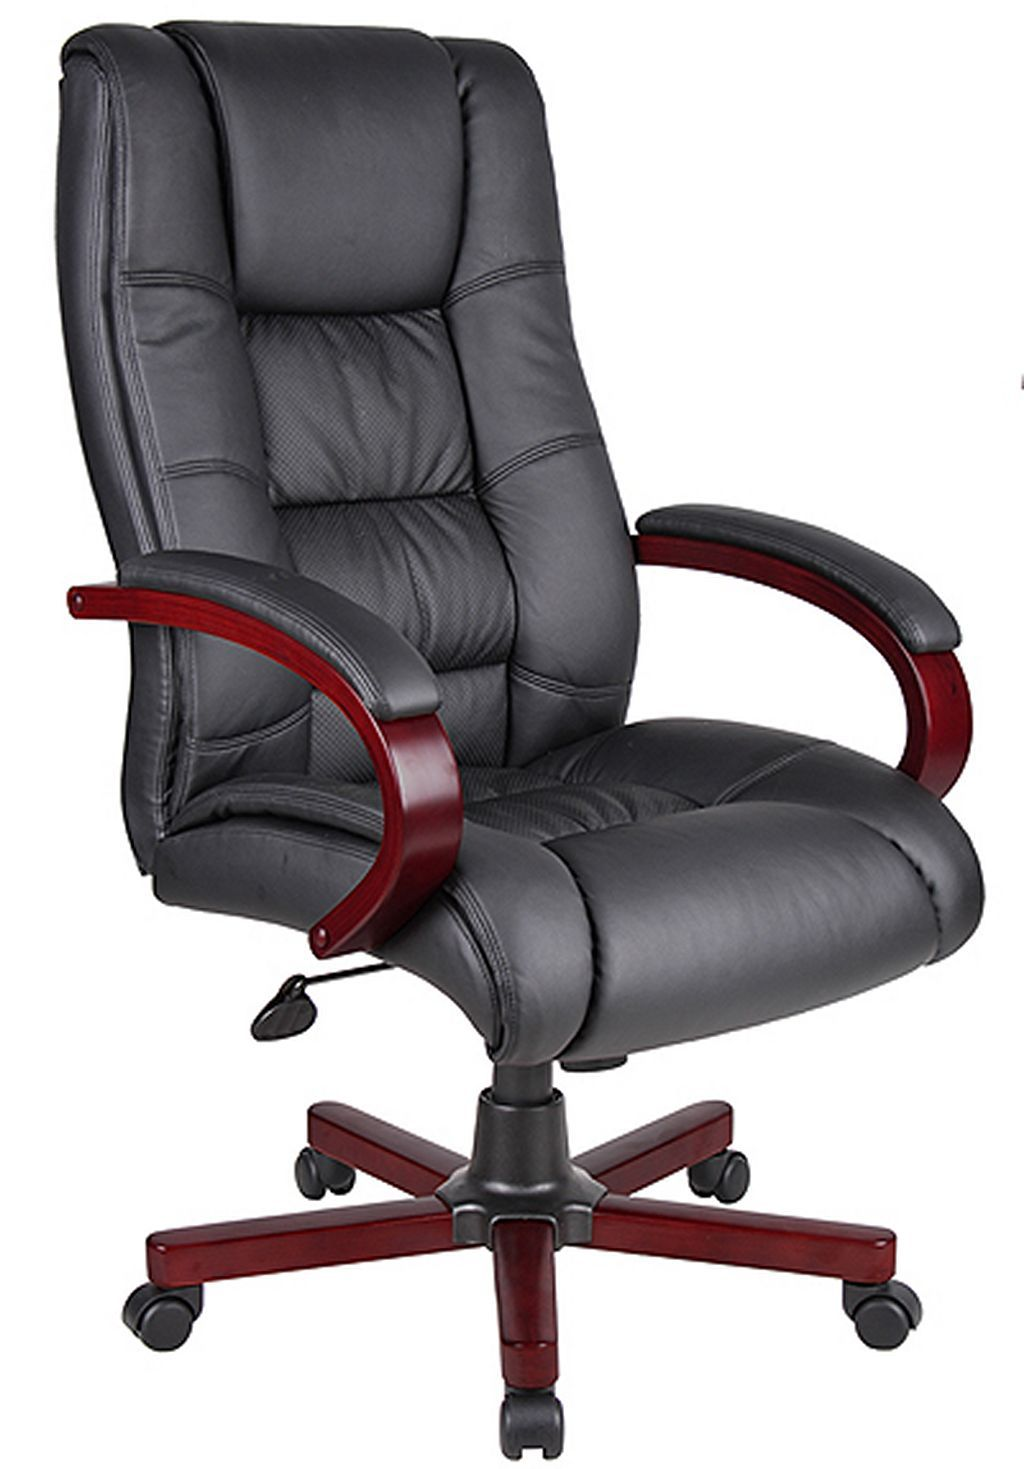 Best office chair 2016 - Leather Office Chair 04 04 2016